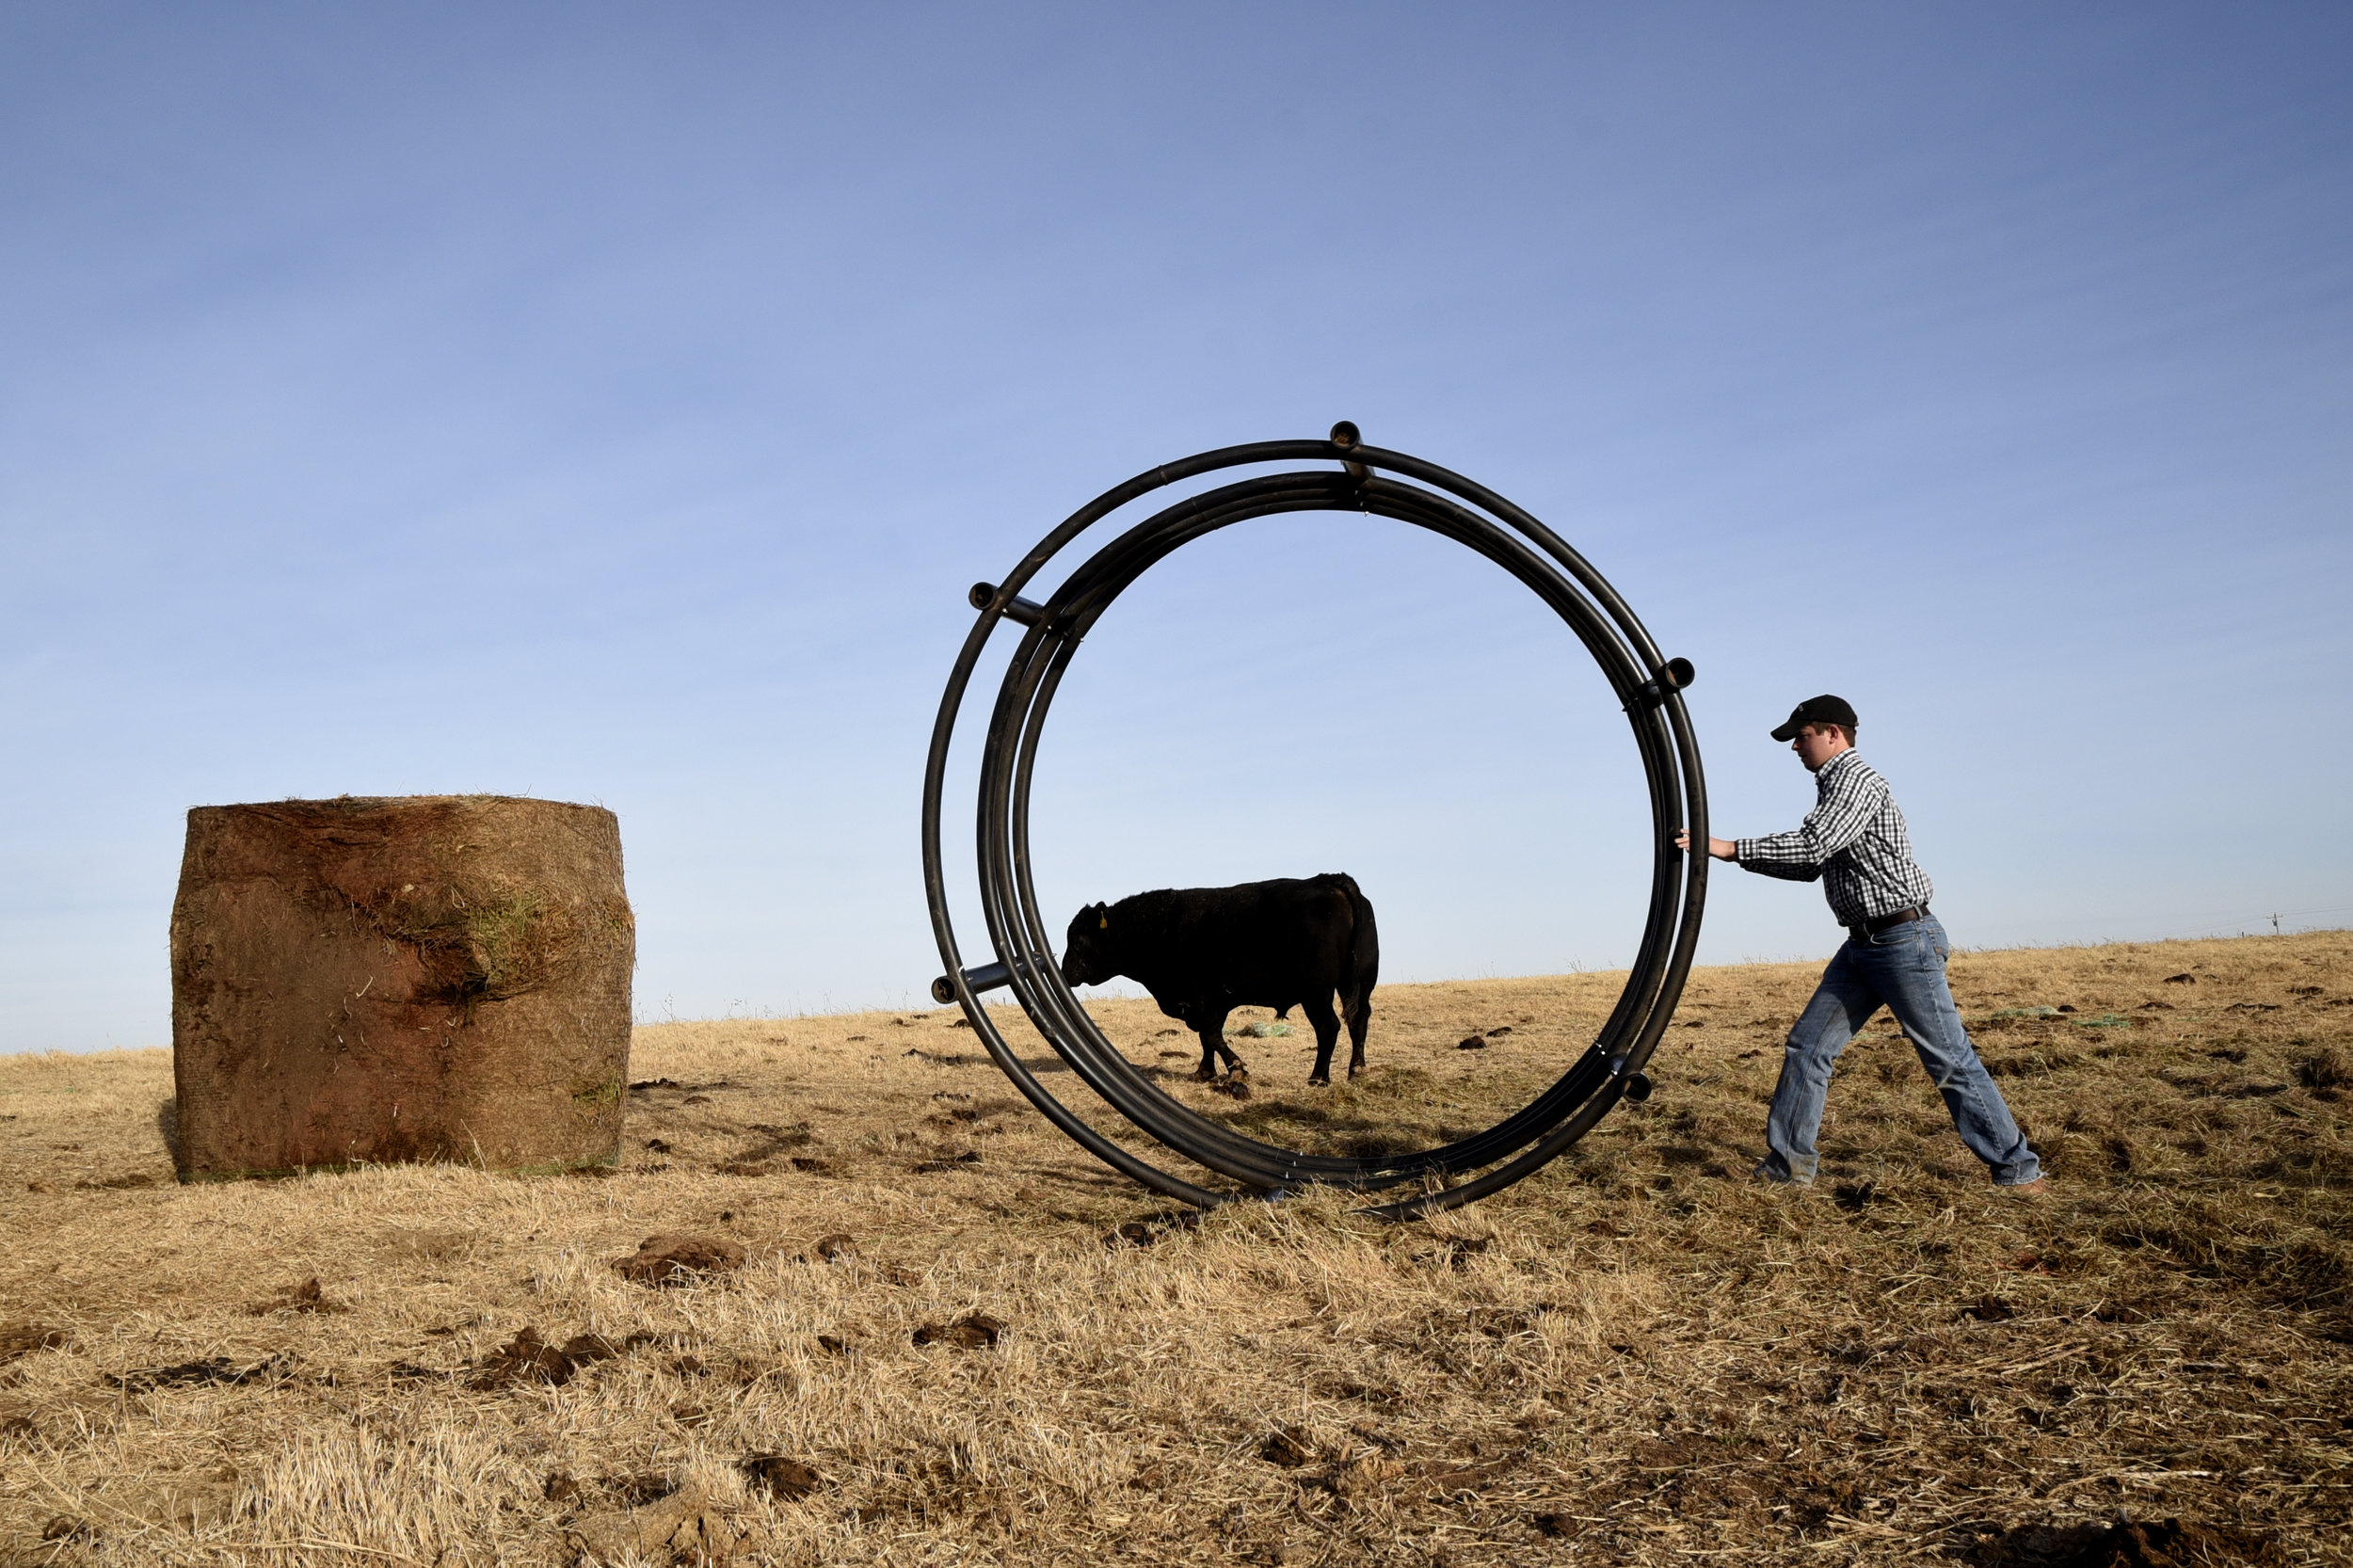 Tyler Schnaithman rolls a hay ring to prep a hay bale for some bulls on his farm in Garber, Oklahoma.